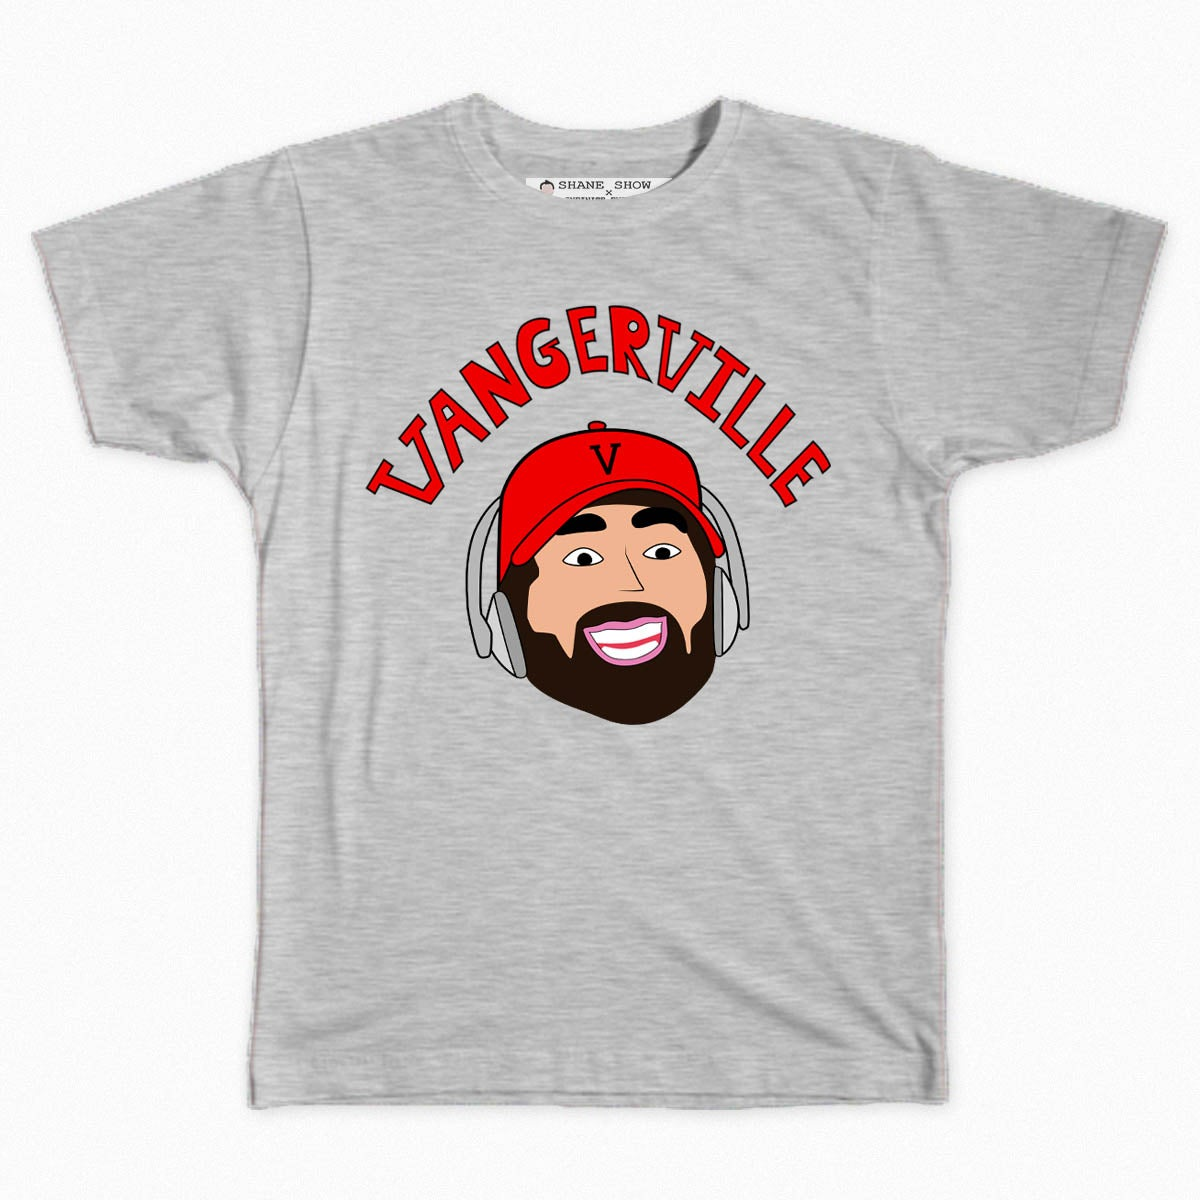 Image of Vangerville Tee (Black or Grey)